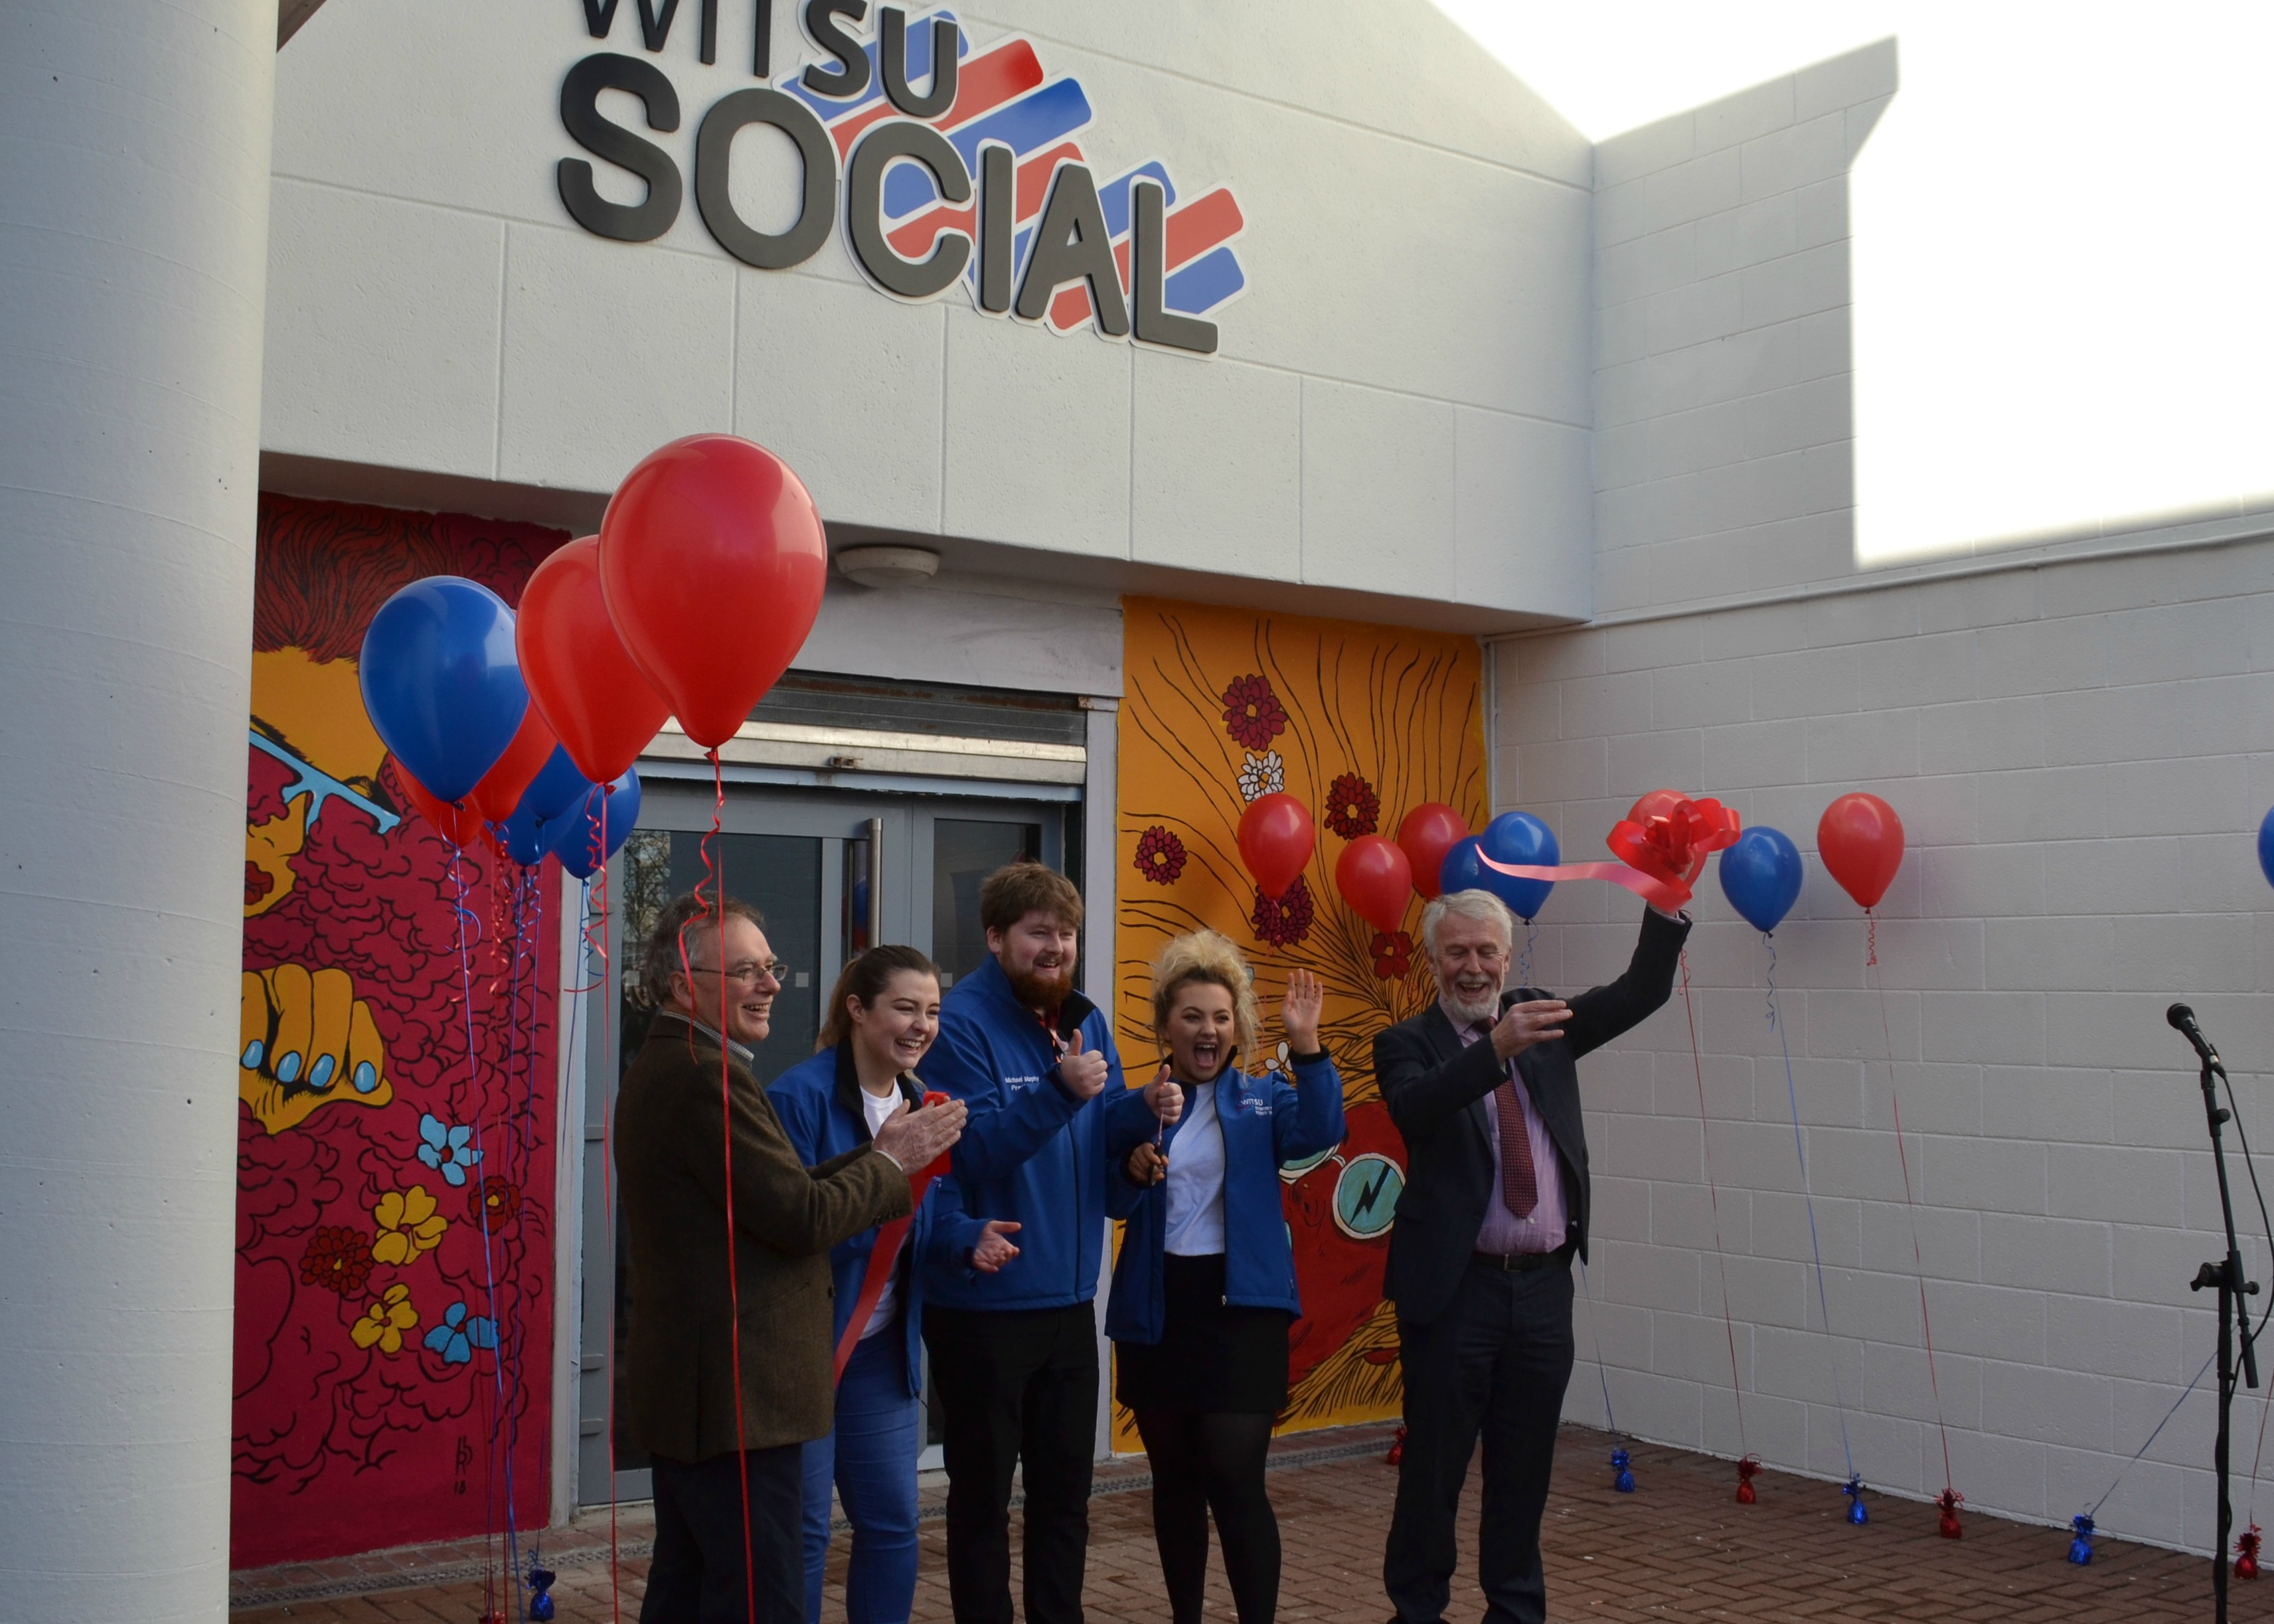 Pictured from left are President of WIT, Willie Donnelly, WITSU Education Officer, Marie Sheedy, WITSU President, Michael Murphy, WITSU Welfare Officer, Celine Casey and Chairperson of the Governing Body of WIT, Jim Moore at the WITSU Social launch